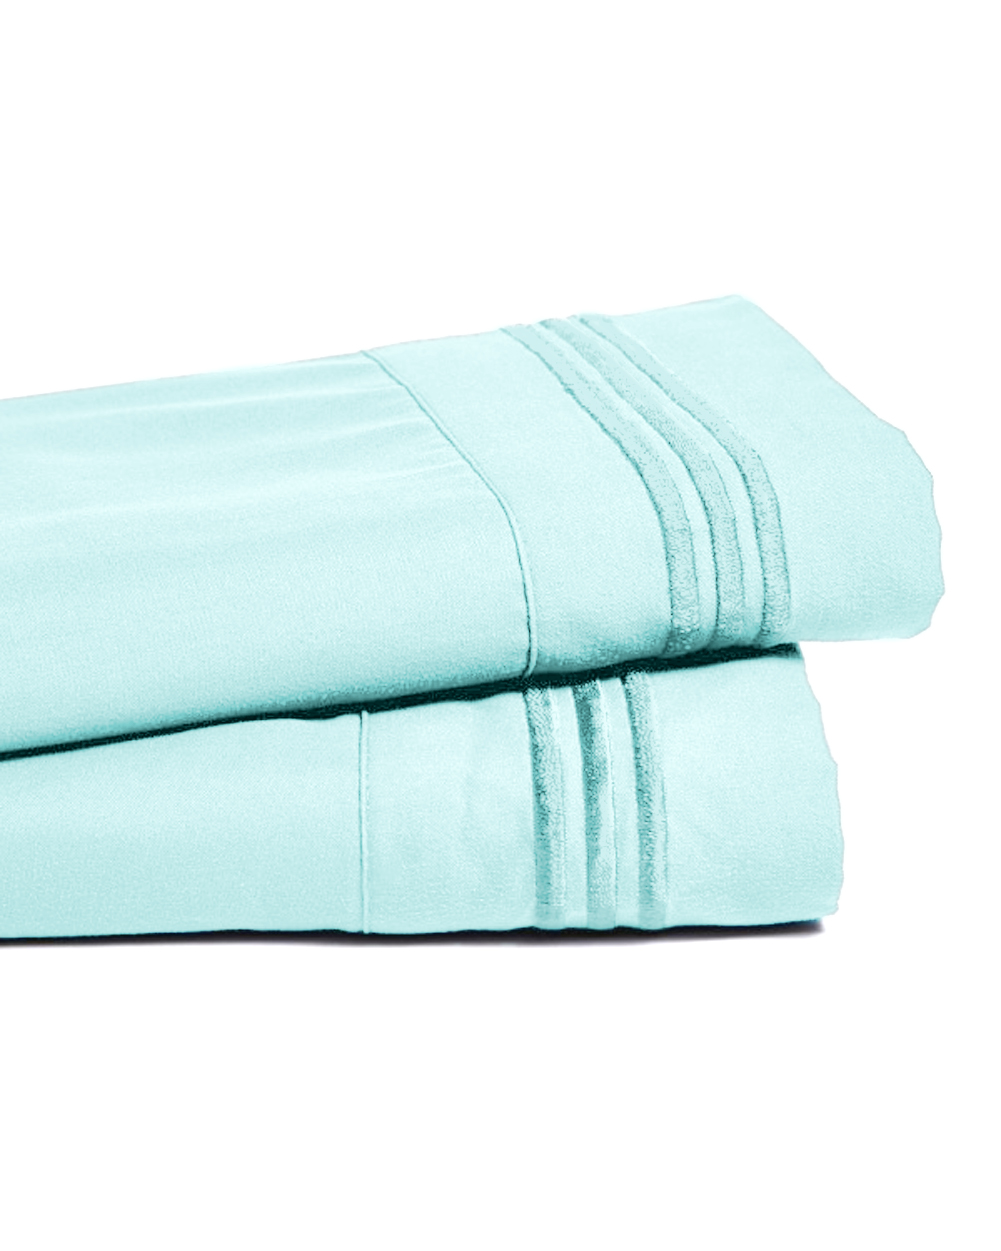 Deep Pocket Bamboo Bed Sheet - Luxury 2200 Embroidered Wrinkle, Fade and Stain Resistant Sheets - Aqua Sky Full Size